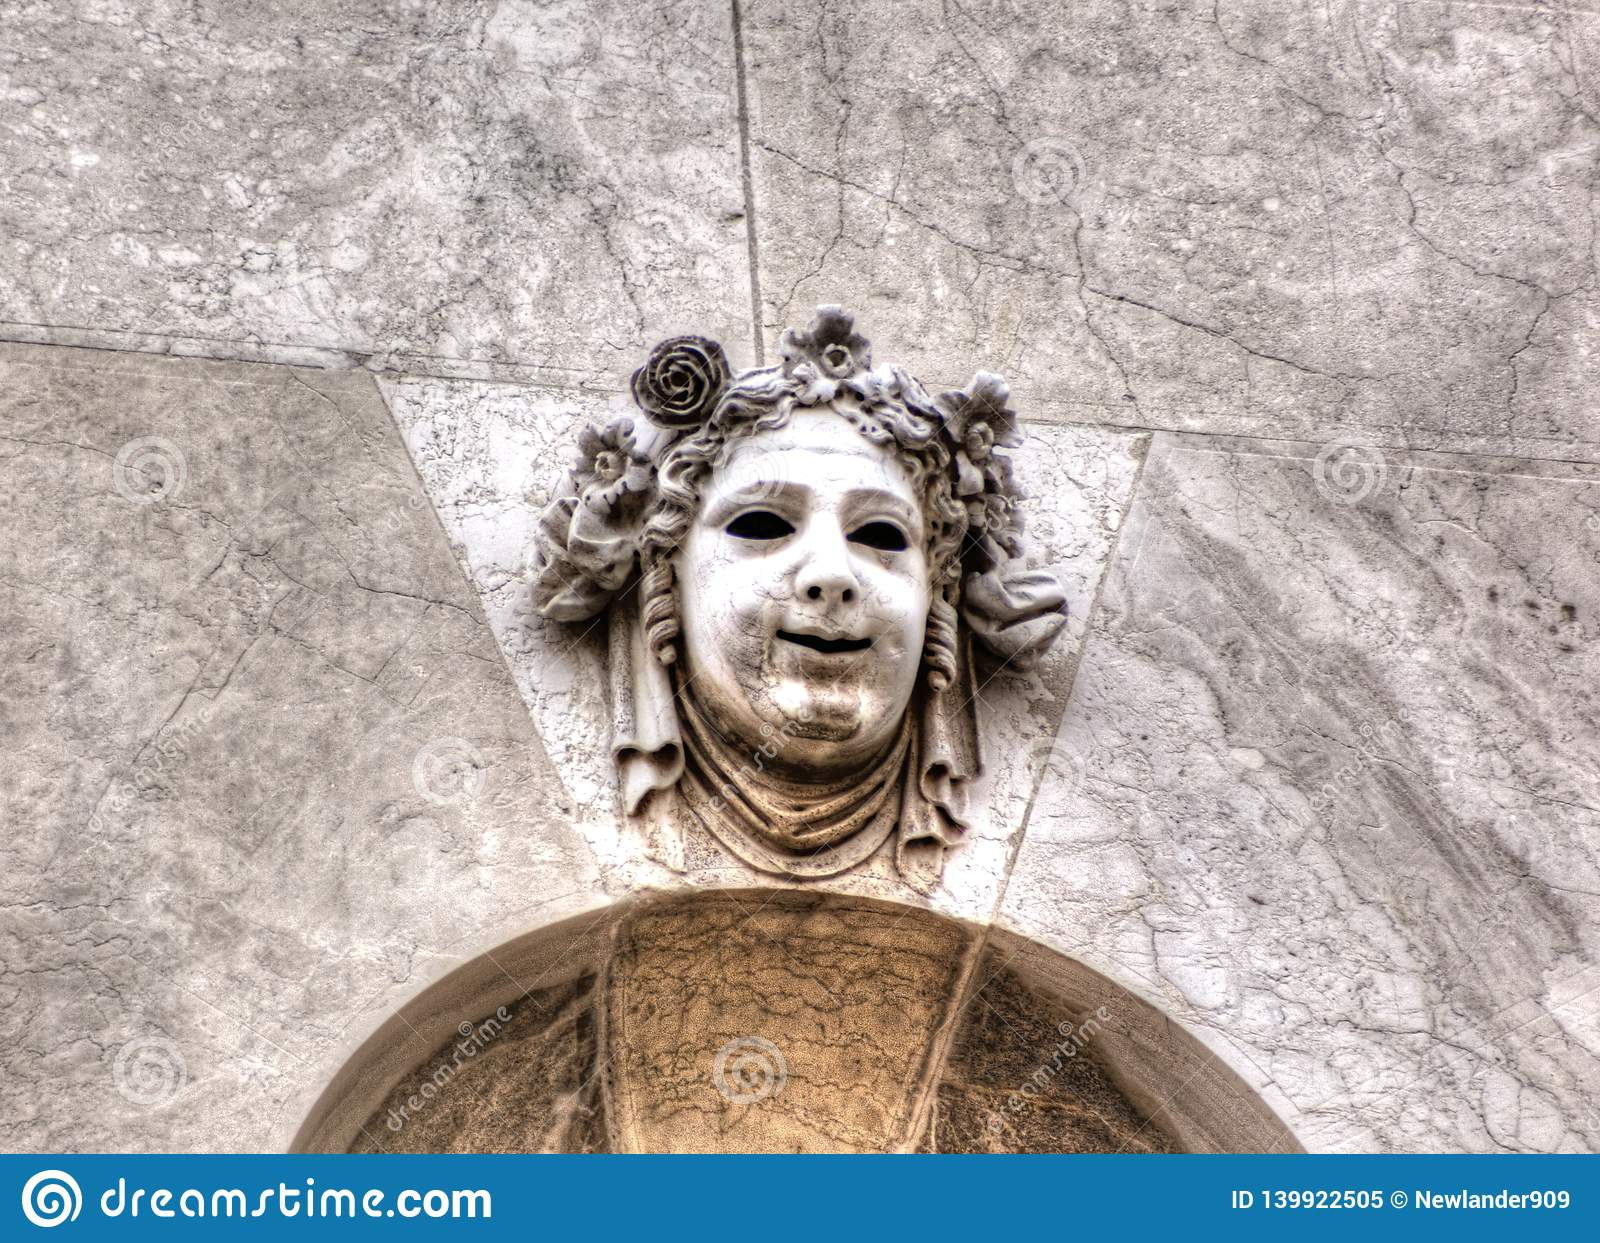 Decorative stone comedy mask. Venice, Italy.